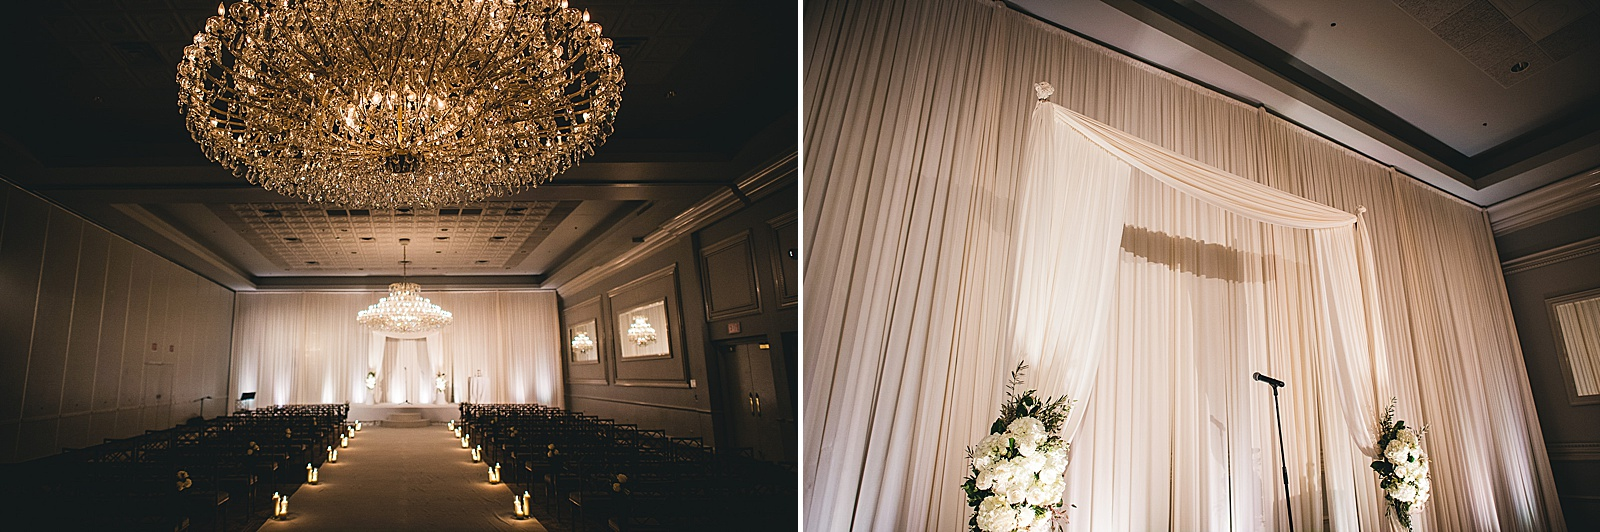 20 wedding photos at drury lane - Oakbrook Wedding Photos at Drury Lane // Marina + Joe